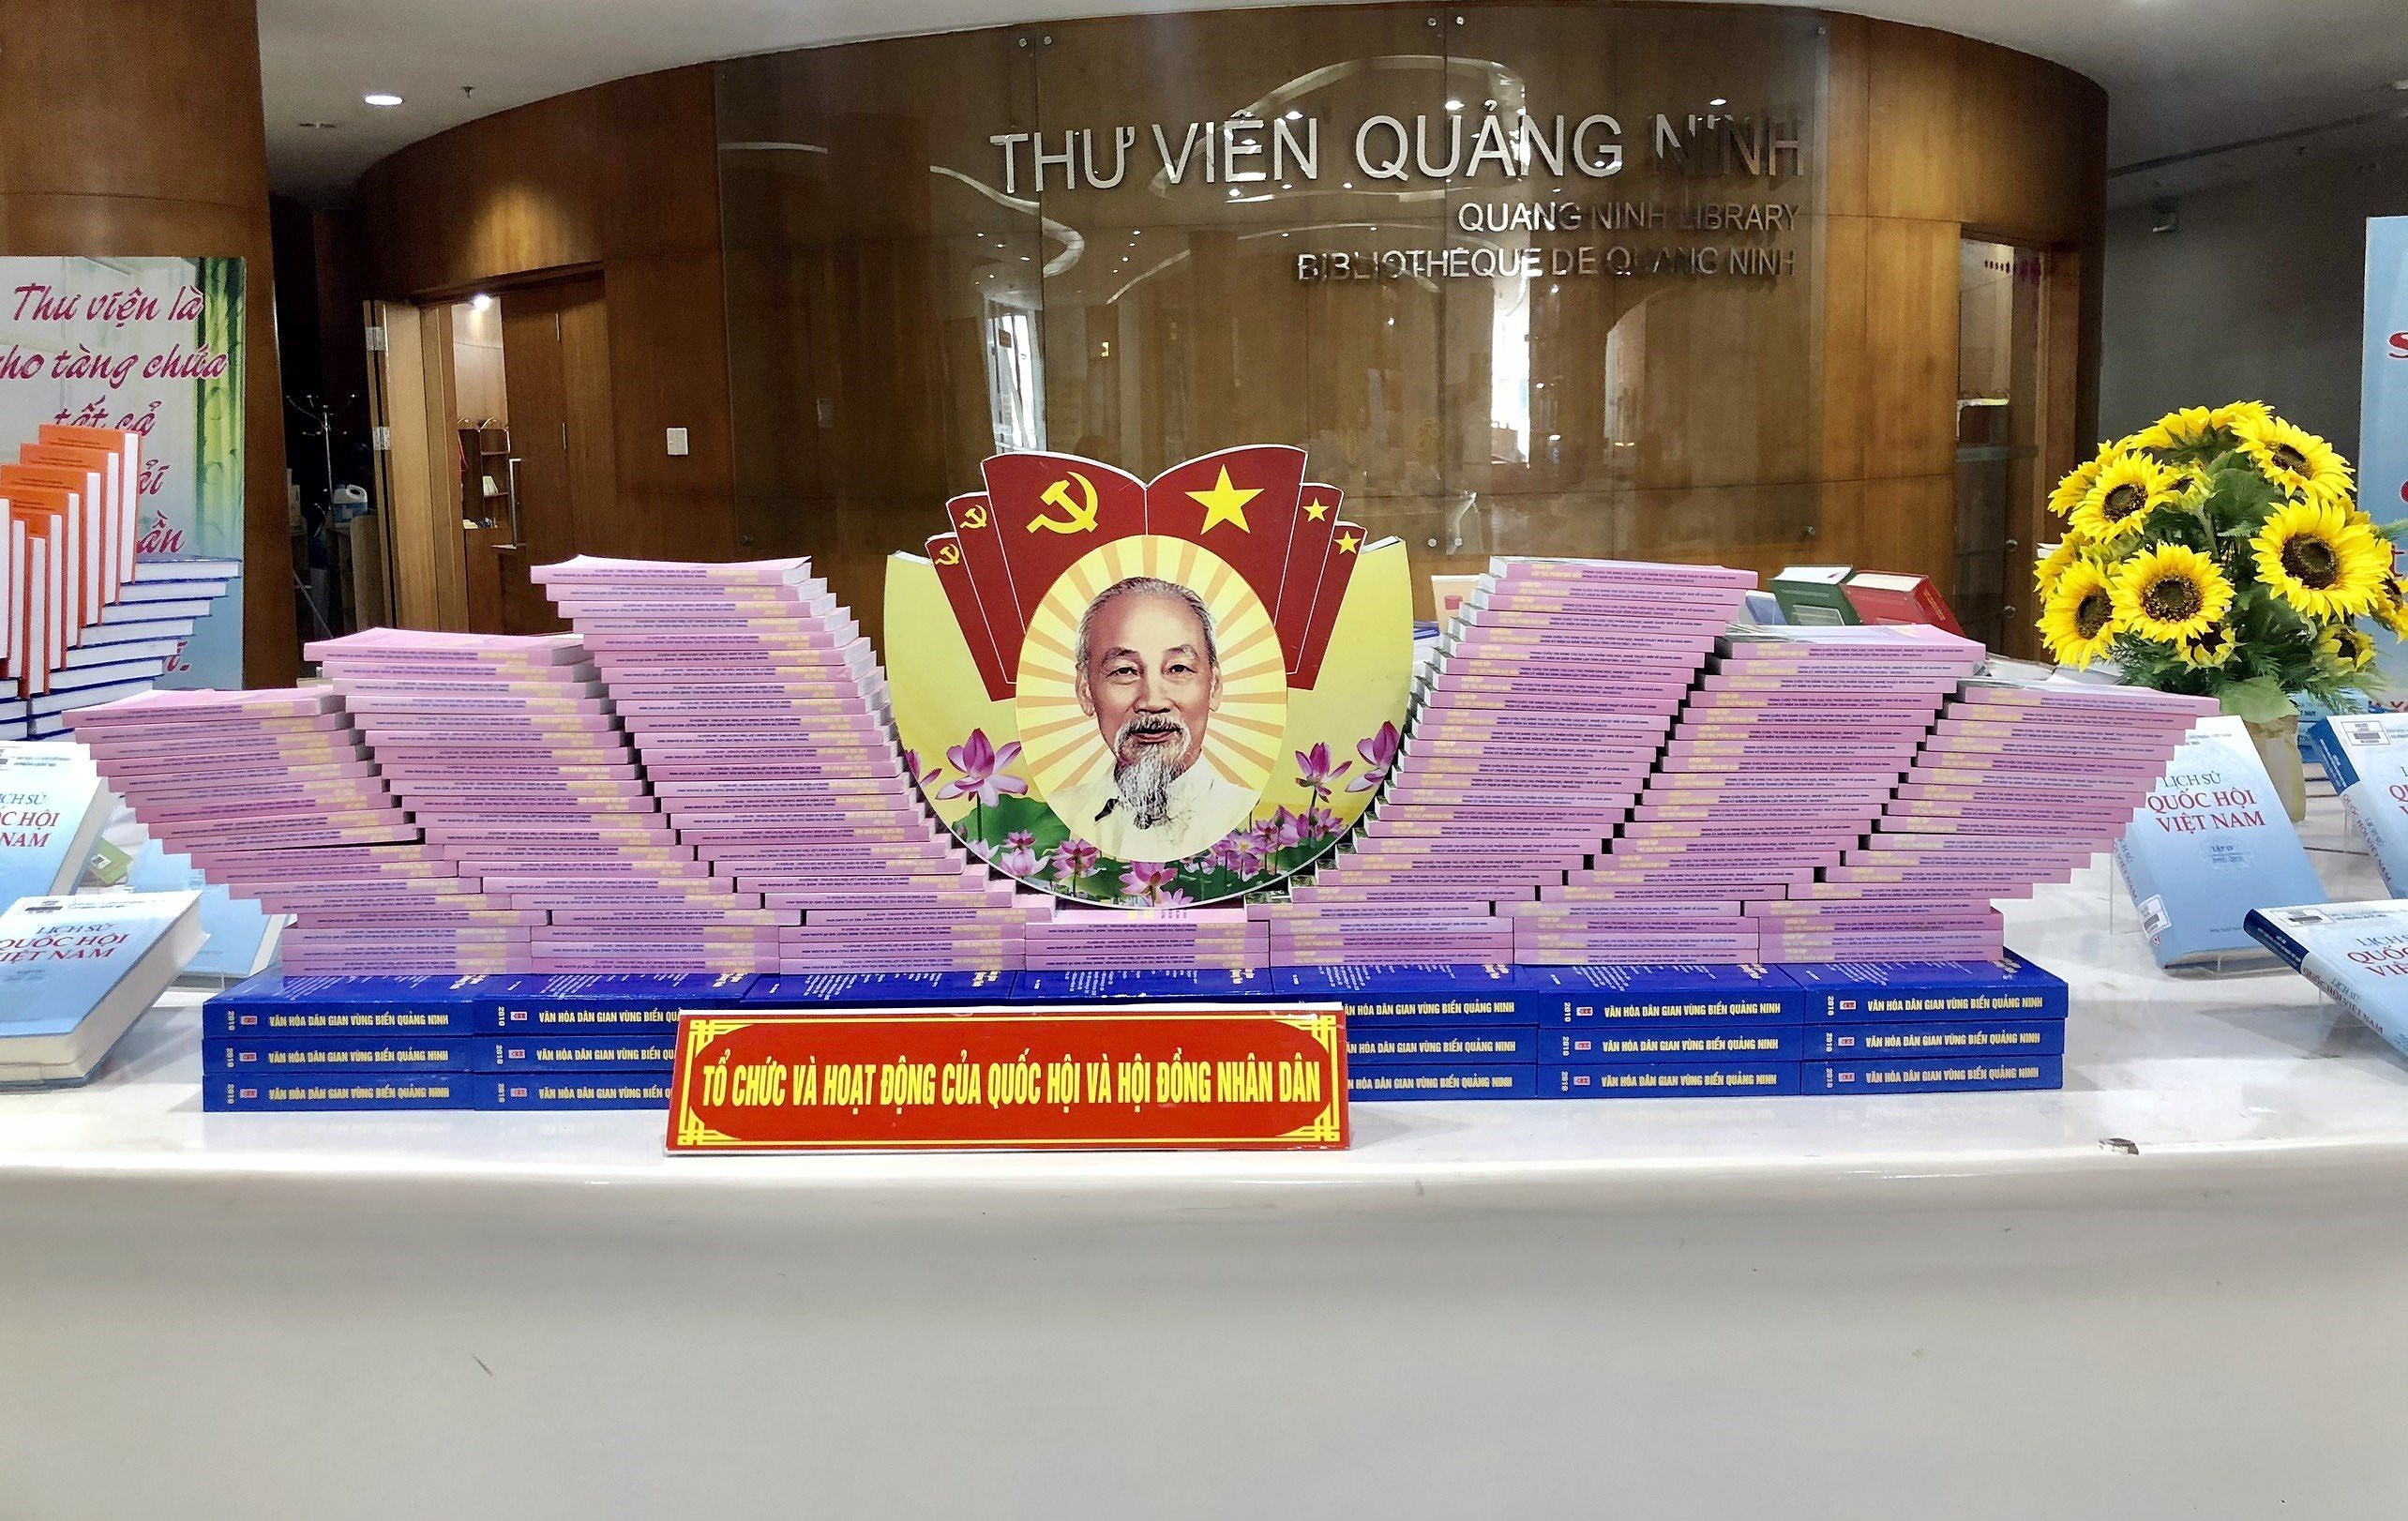 Books on election on display in Quang Ninh province hinh anh 1